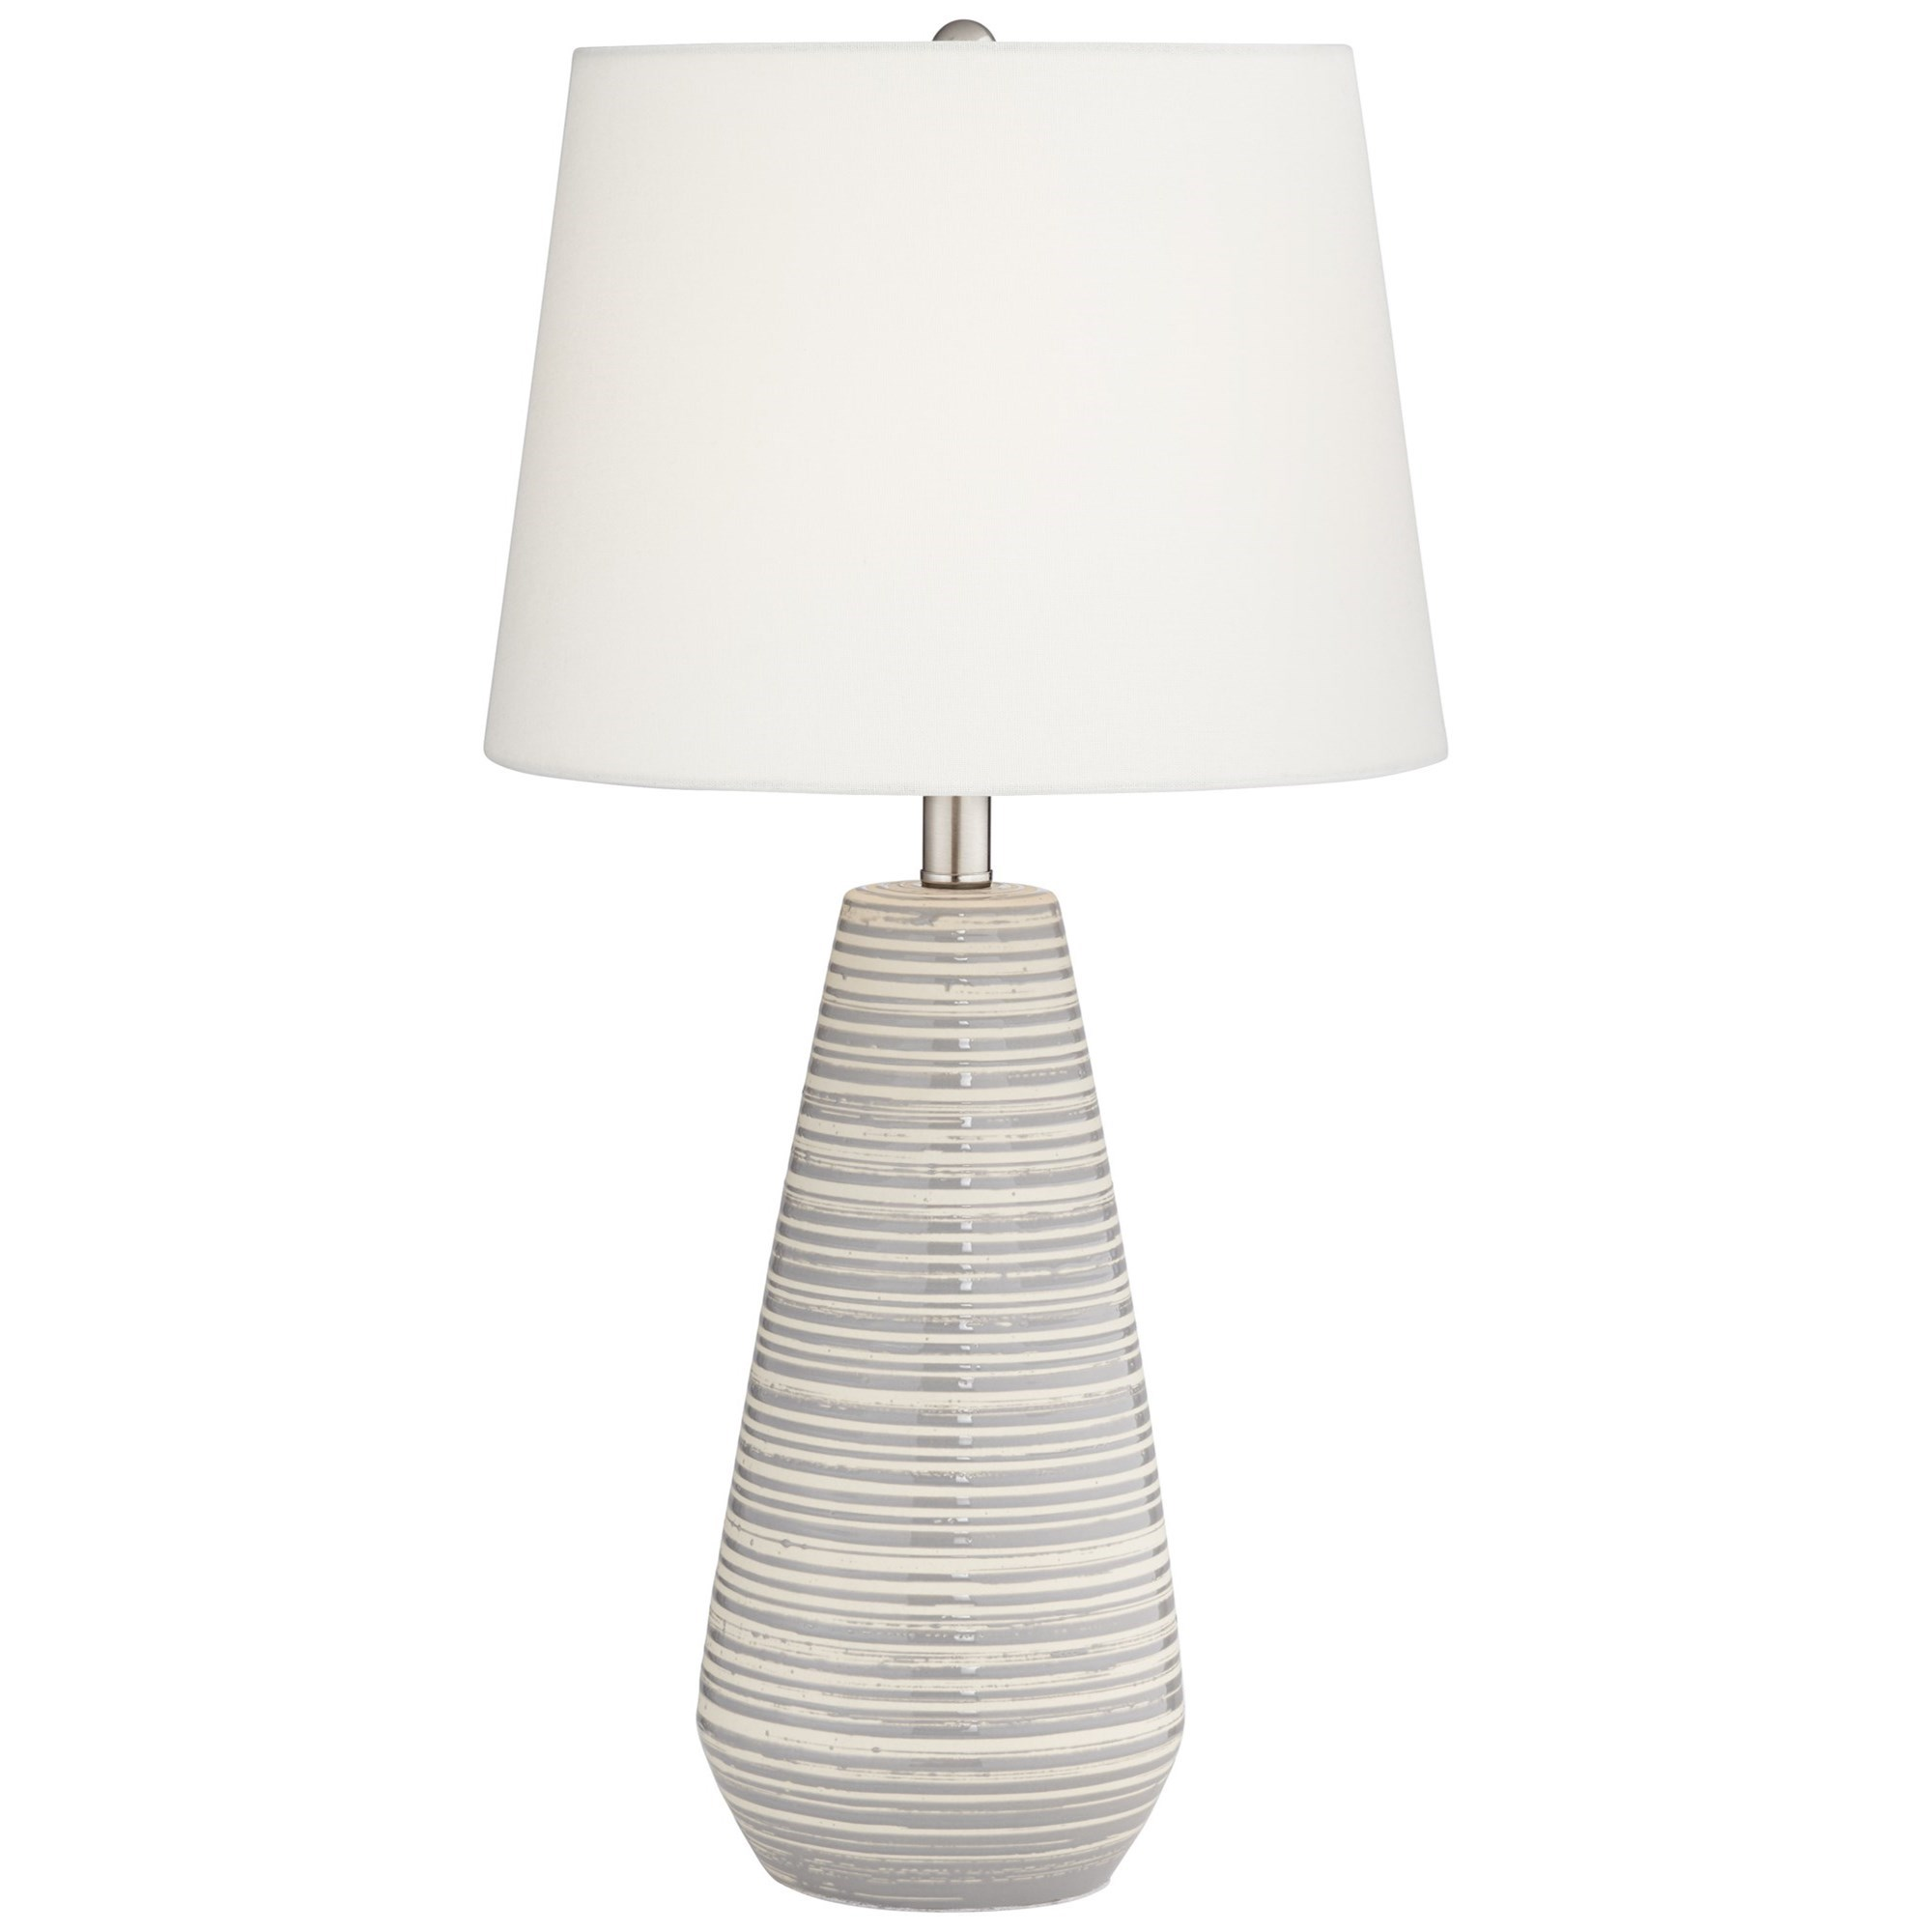 Table Lamps Table Lamp by Pacific Coast Lighting at Miller Home